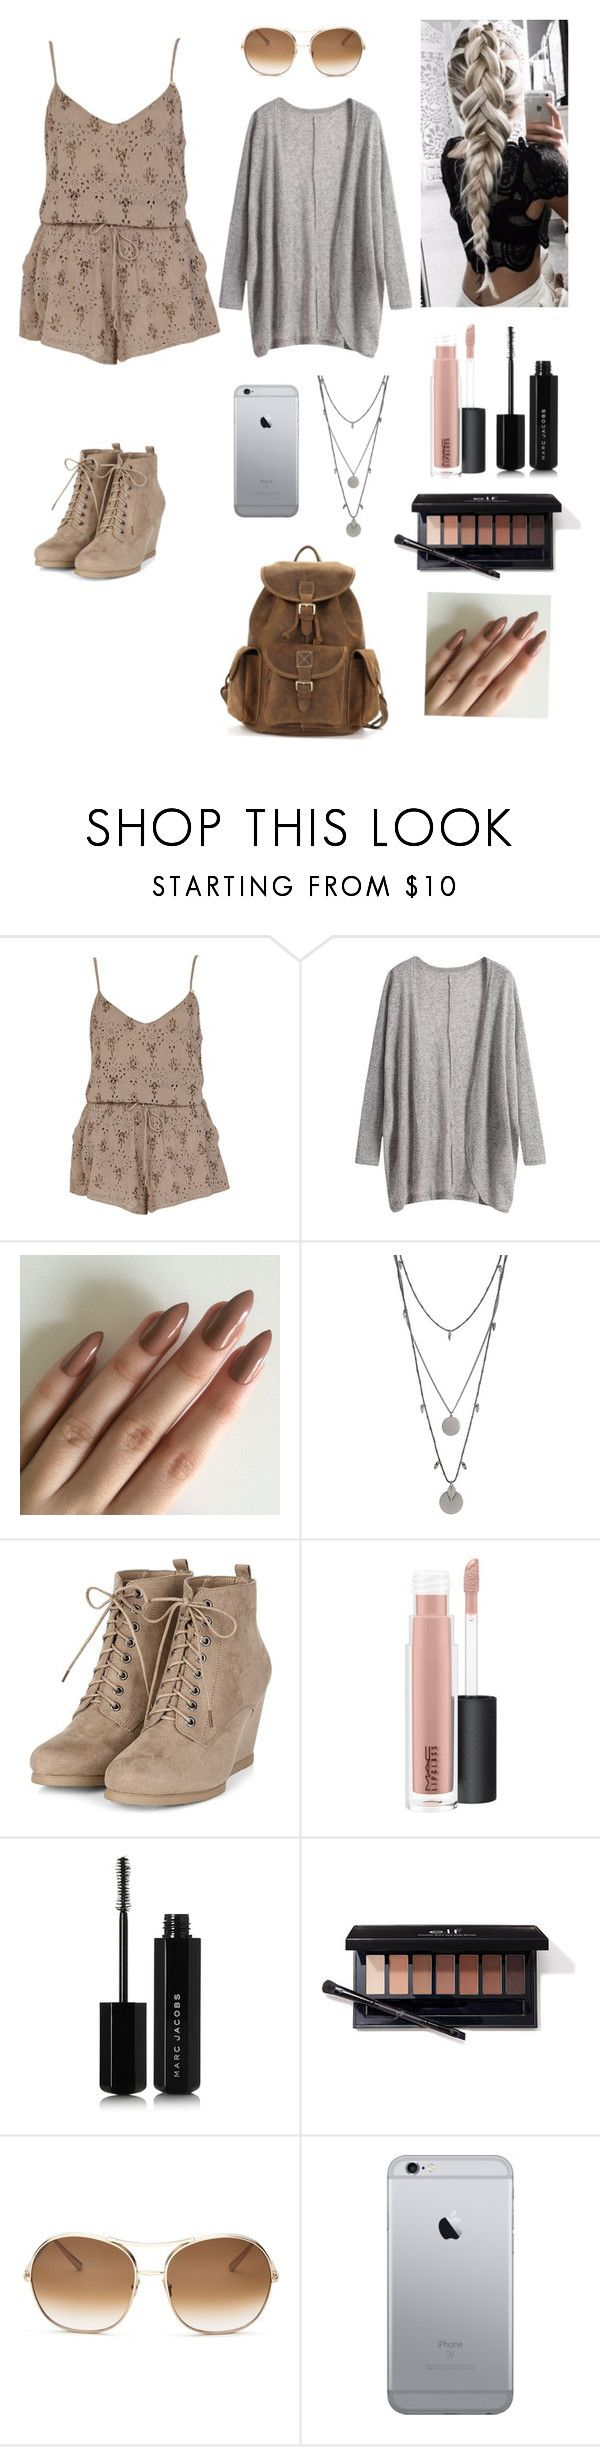 """""""School outfit#34"""" by treasureclarke ❤ liked on Polyvore featuring River Island, Vince Camuto, MAC Cosmetics, Marc Jacobs and Chloé"""